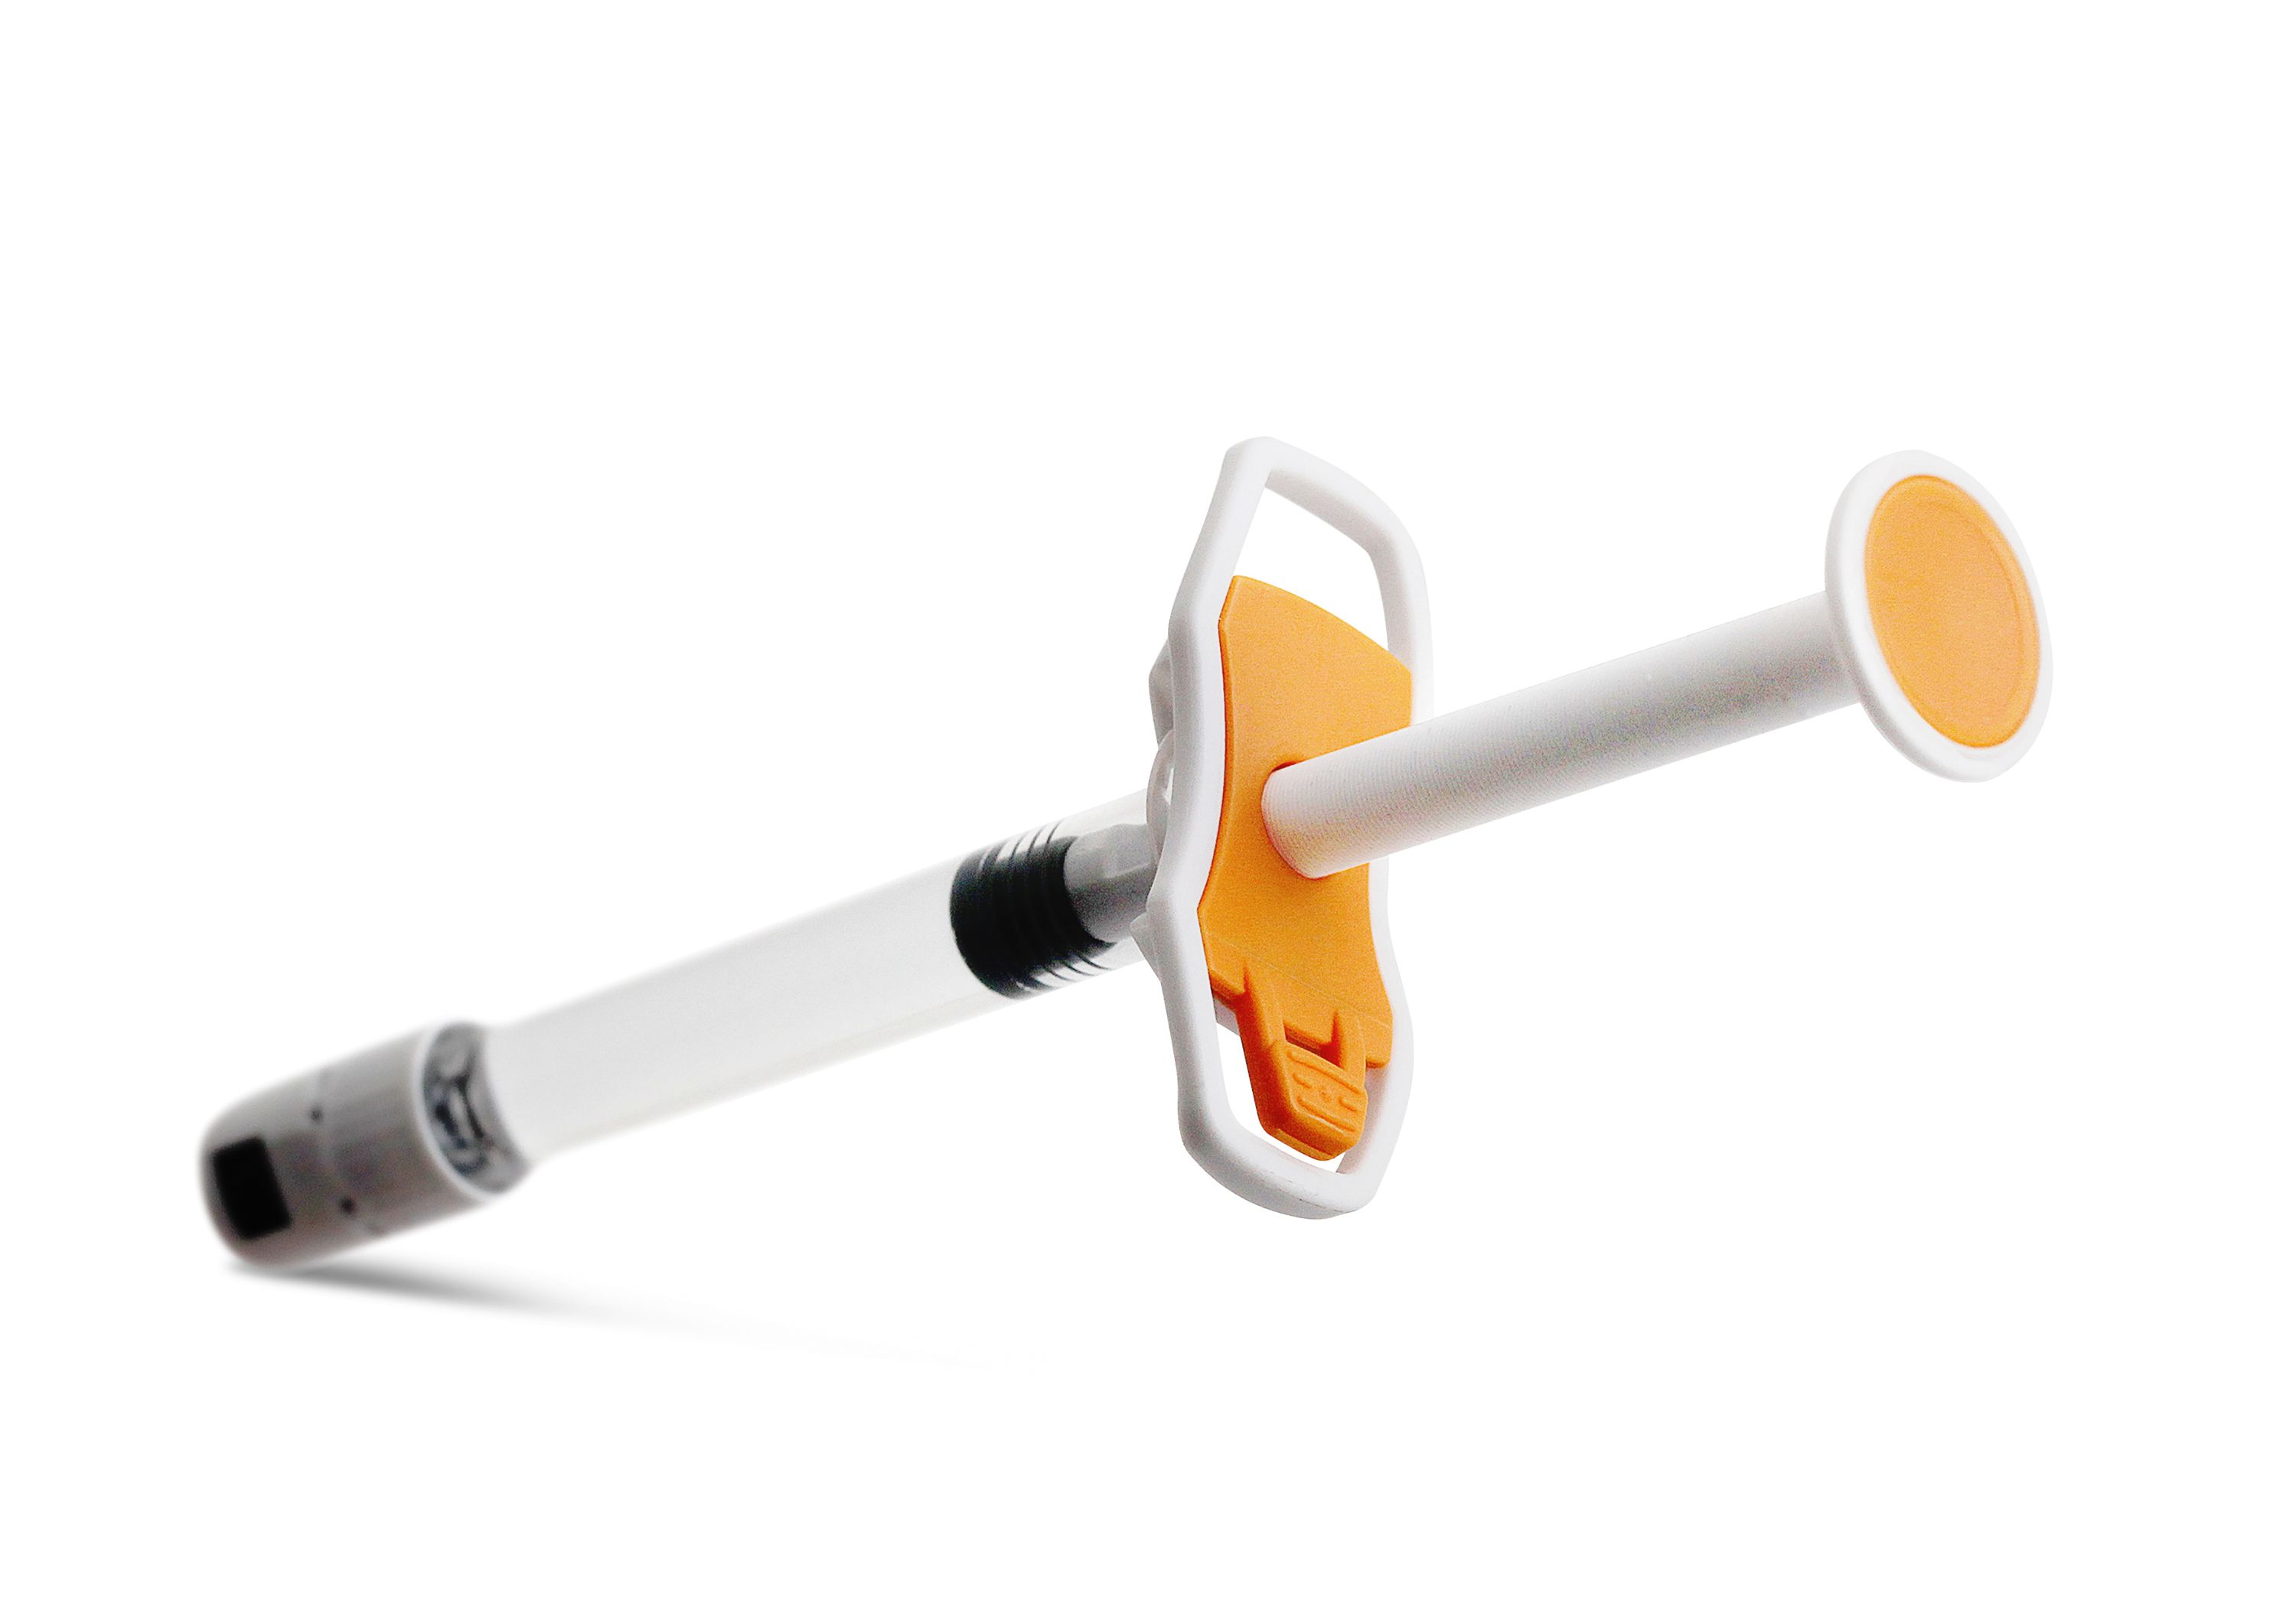 Smartclick system injection device manufacturer q med ab for Medical product design companies